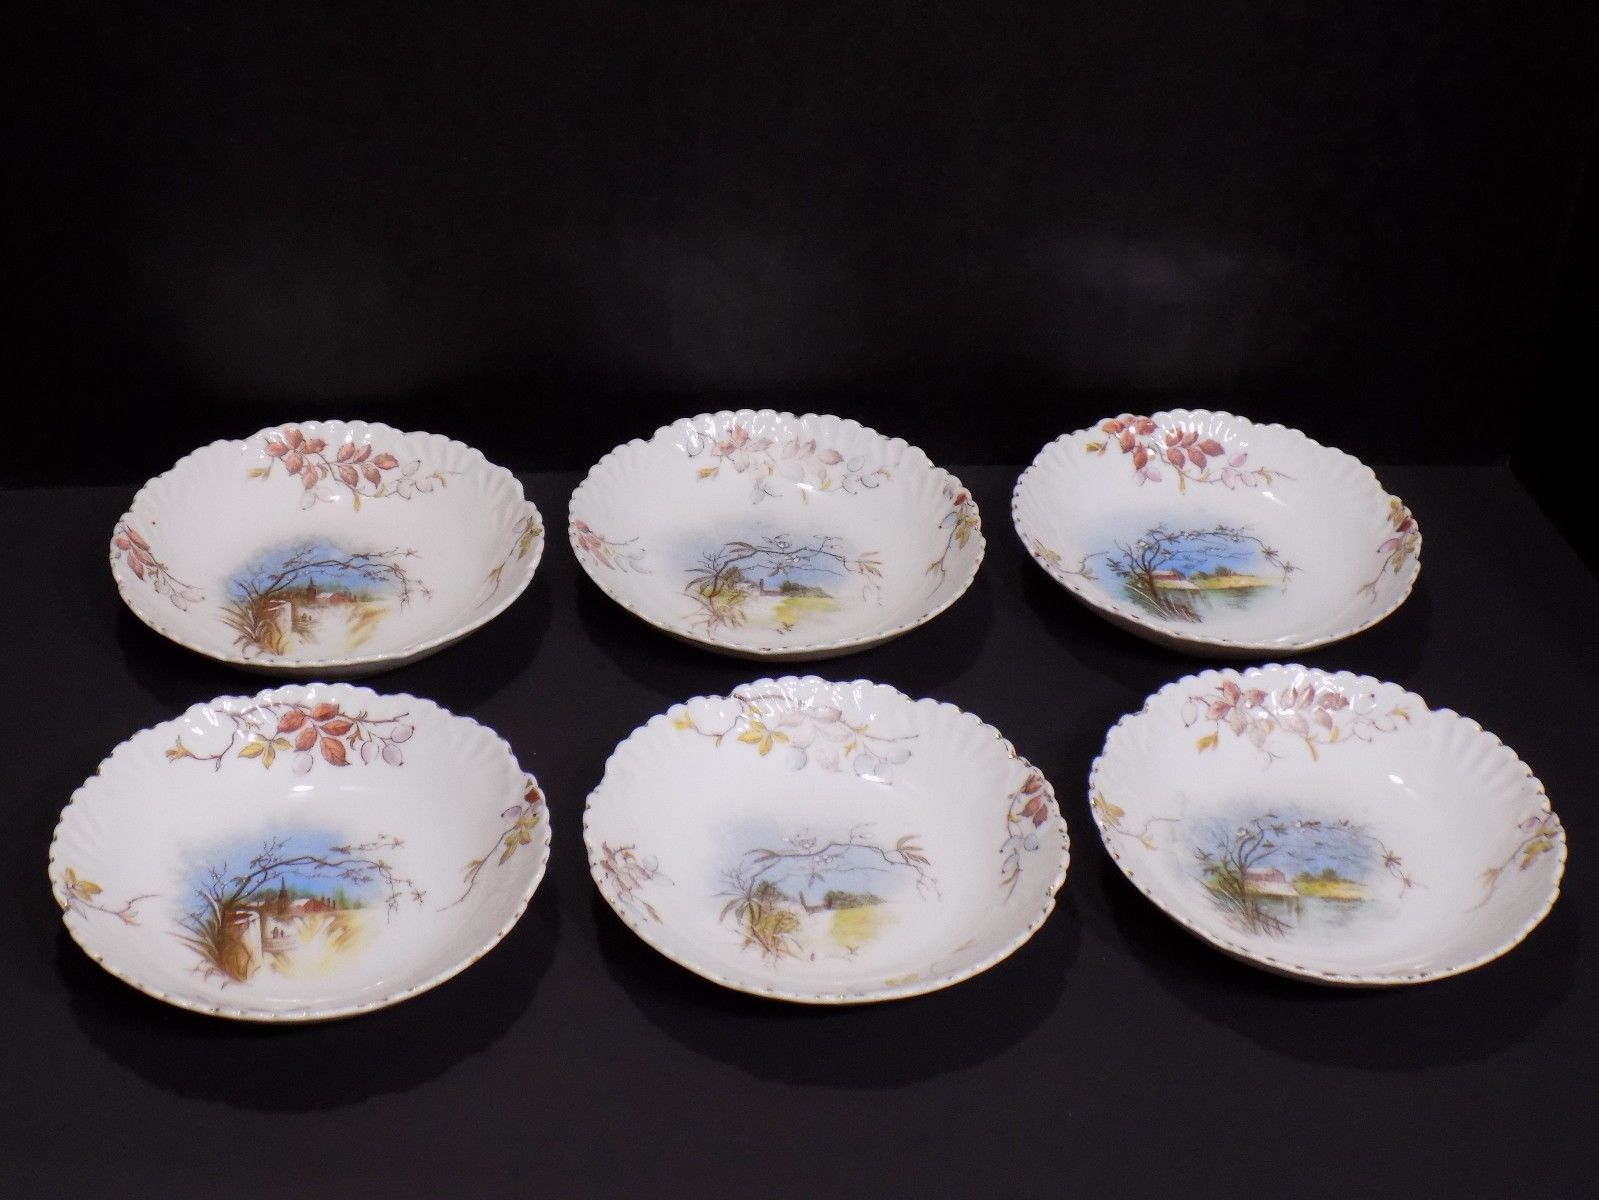 Primary image for 6 Antique CARLSBAD China Austria Unique Farm Scene Pattern Berry / Dessert Bowls